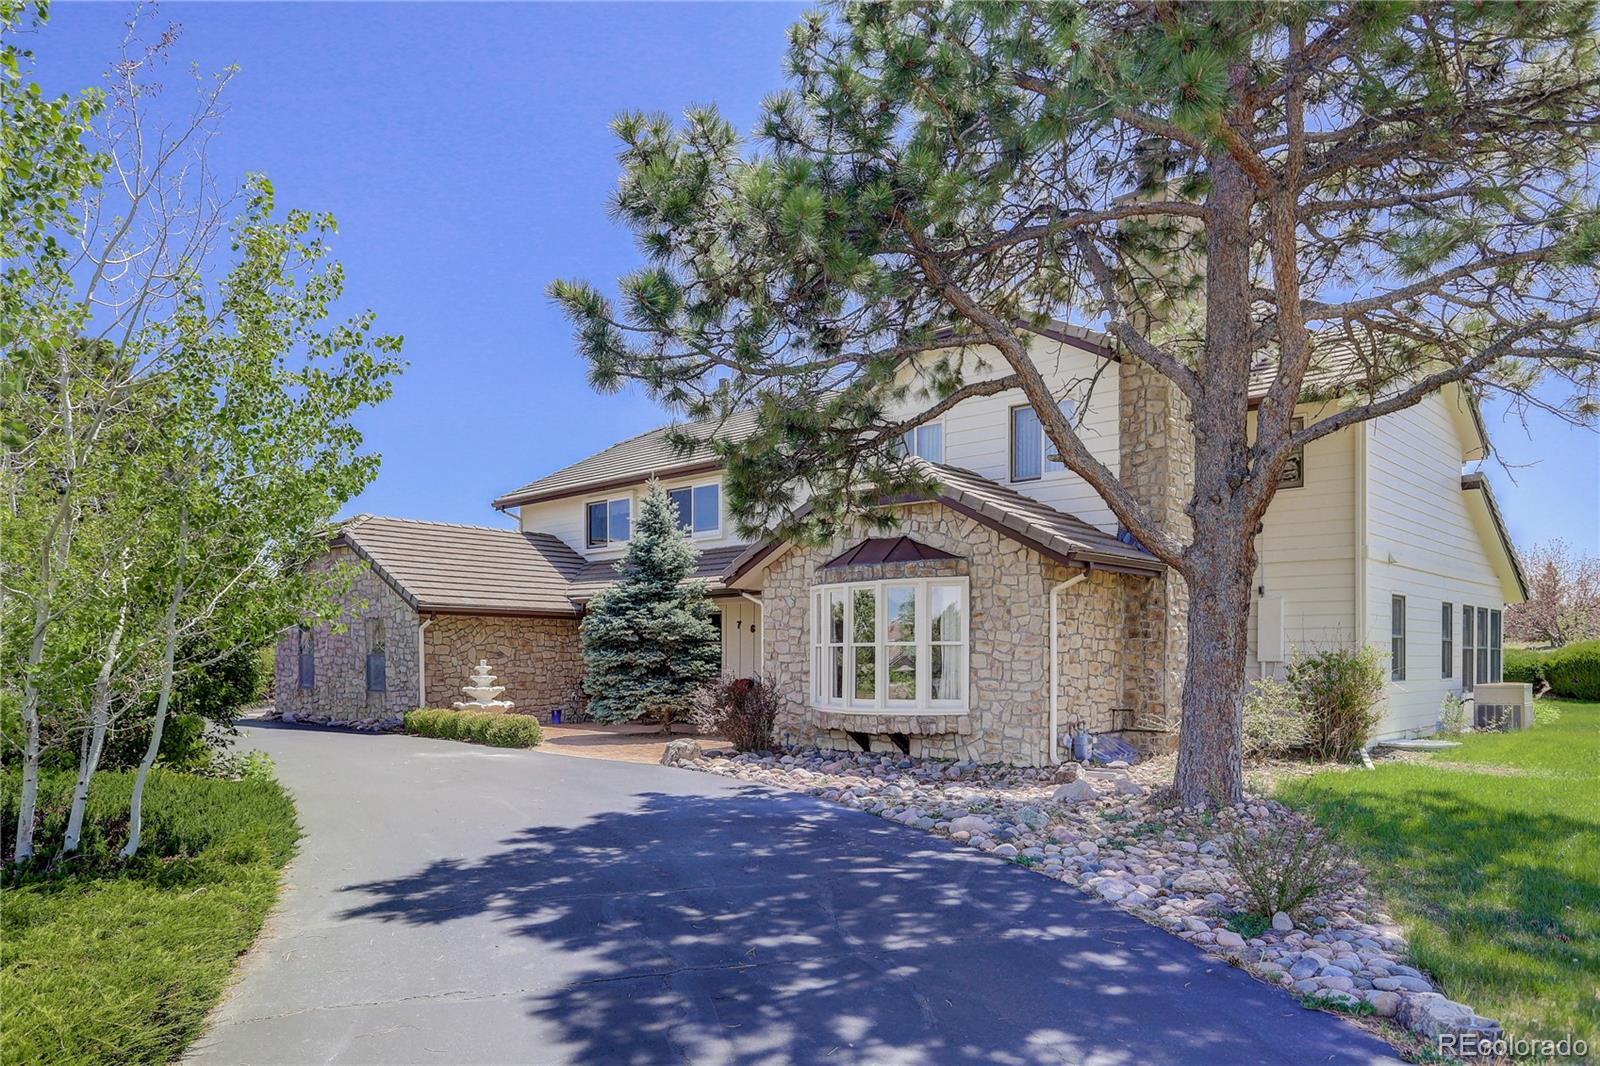 7644 S Quintero Court, Centennial, CO 80016 - Centennial, CO real estate listing